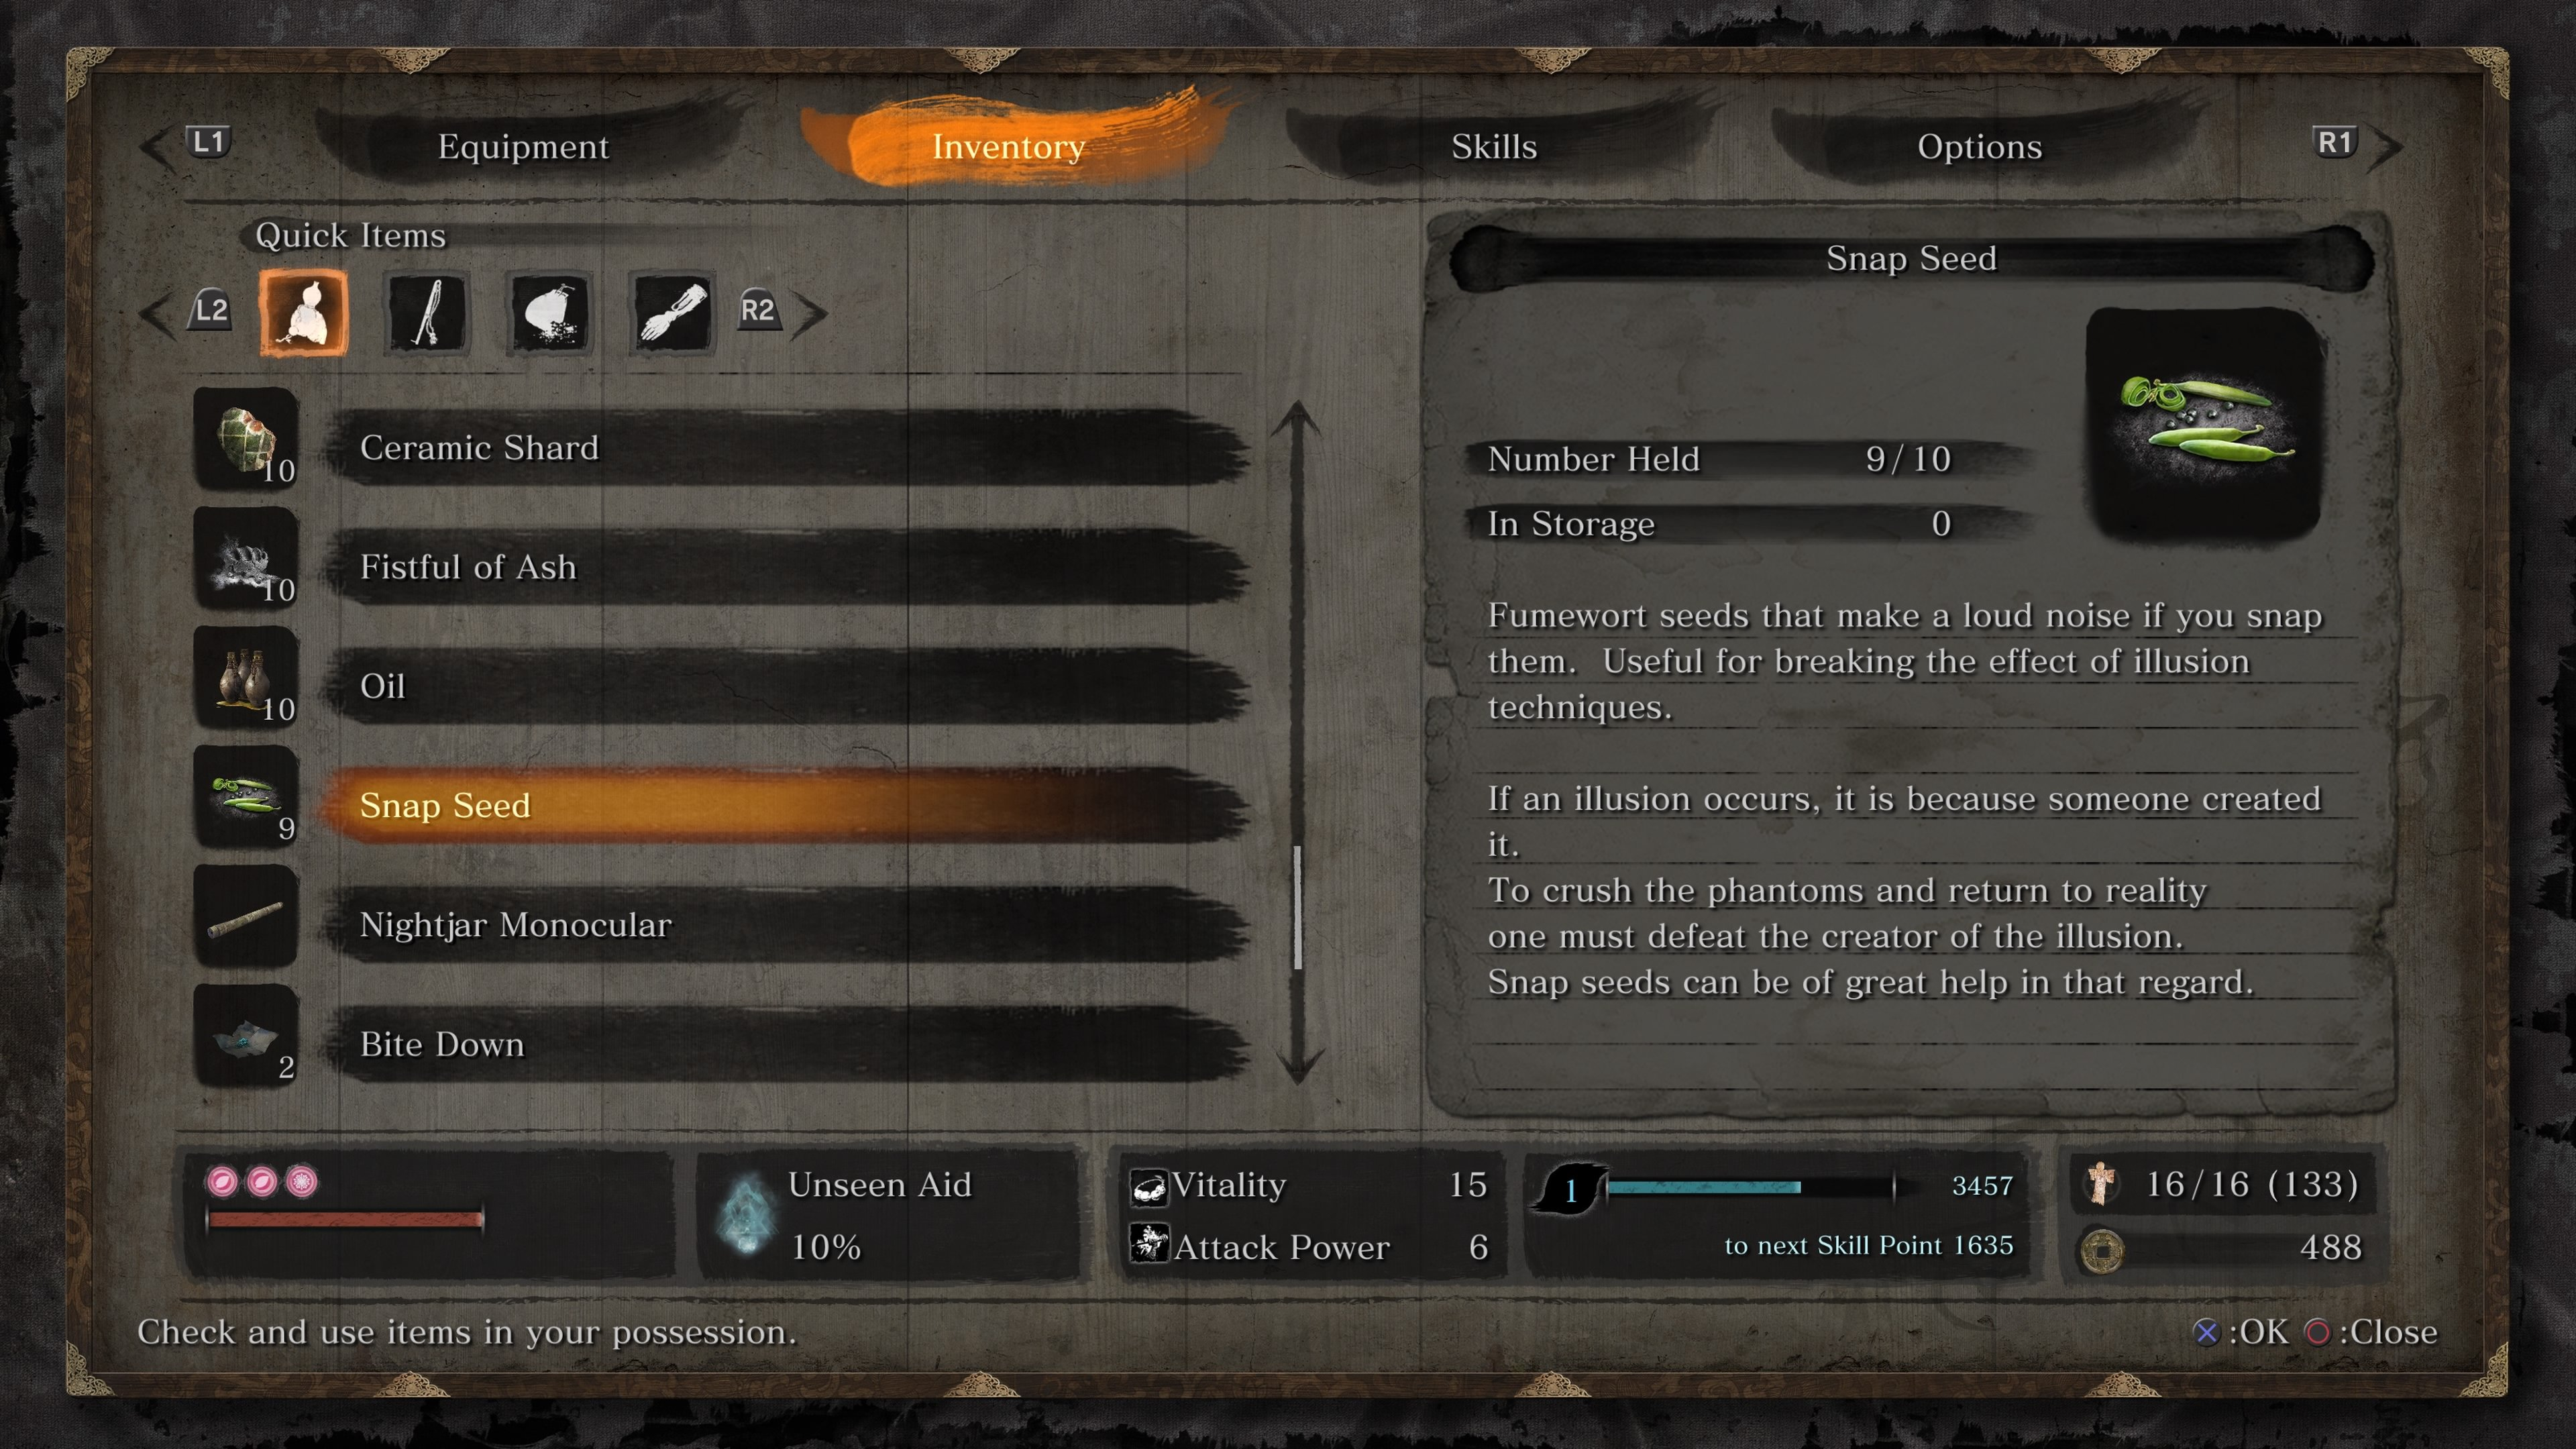 Where to find Snap Seeds in Sekiro: Shadows Die Twice